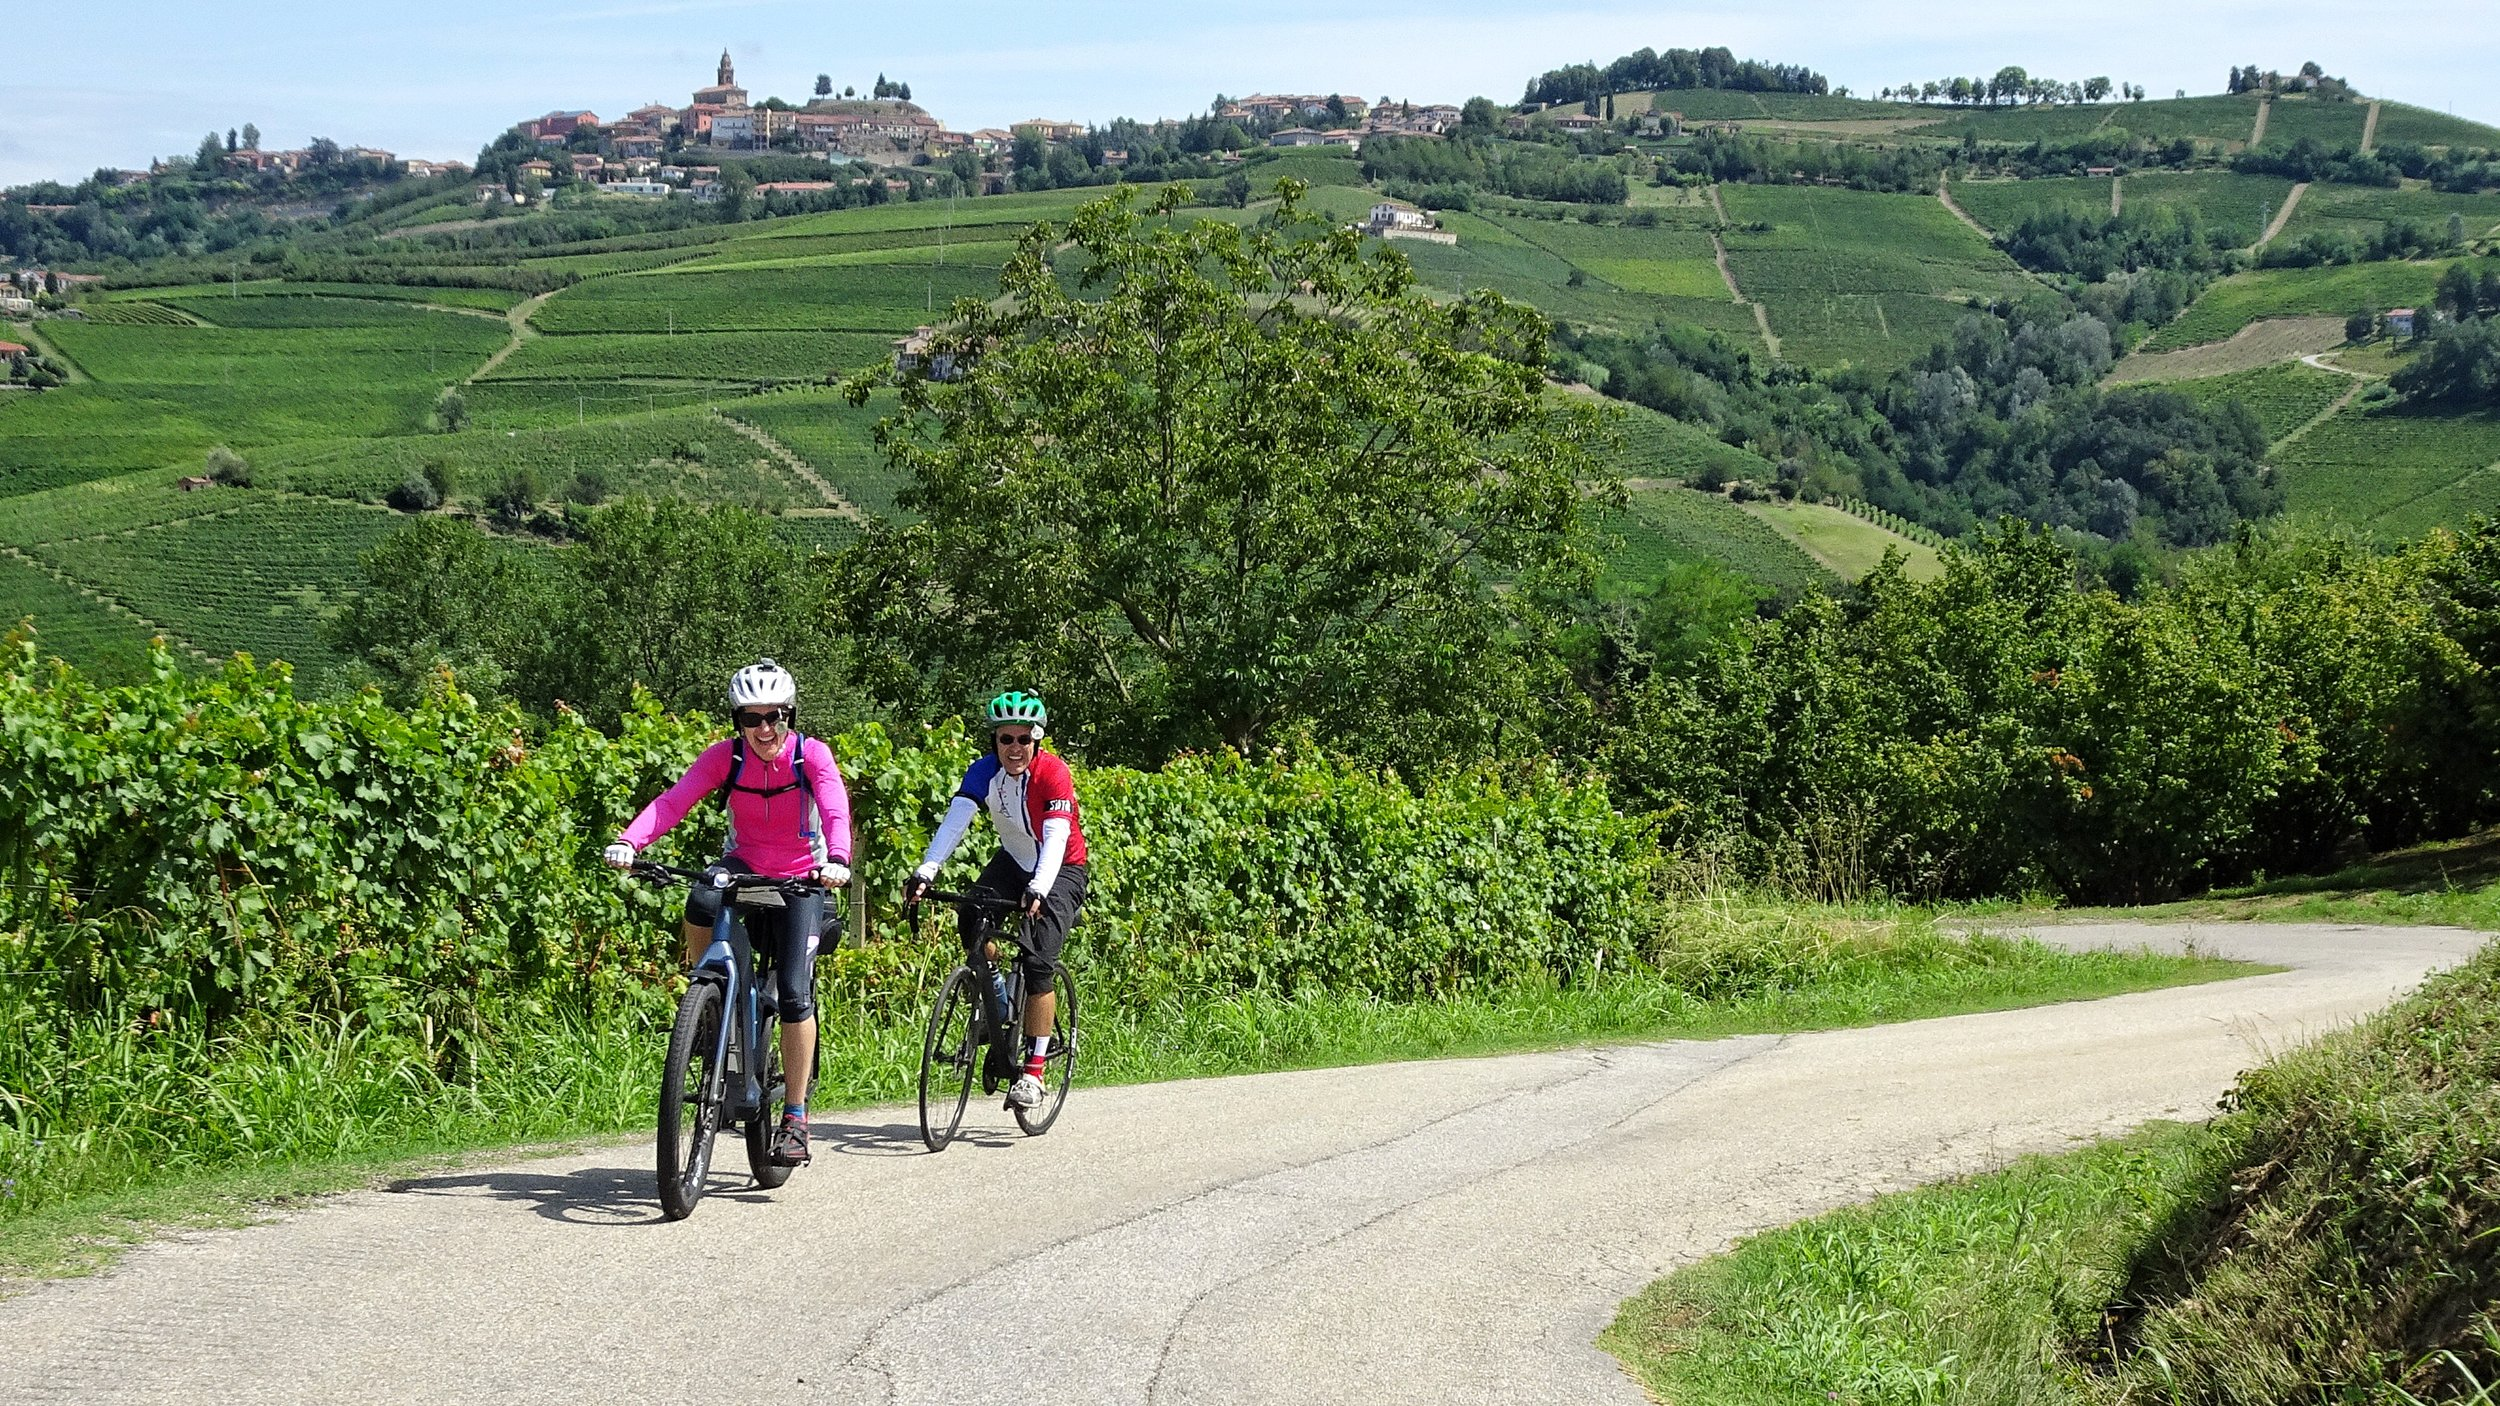 Ride up to Diano d'Alba through thousands of grapes vines.